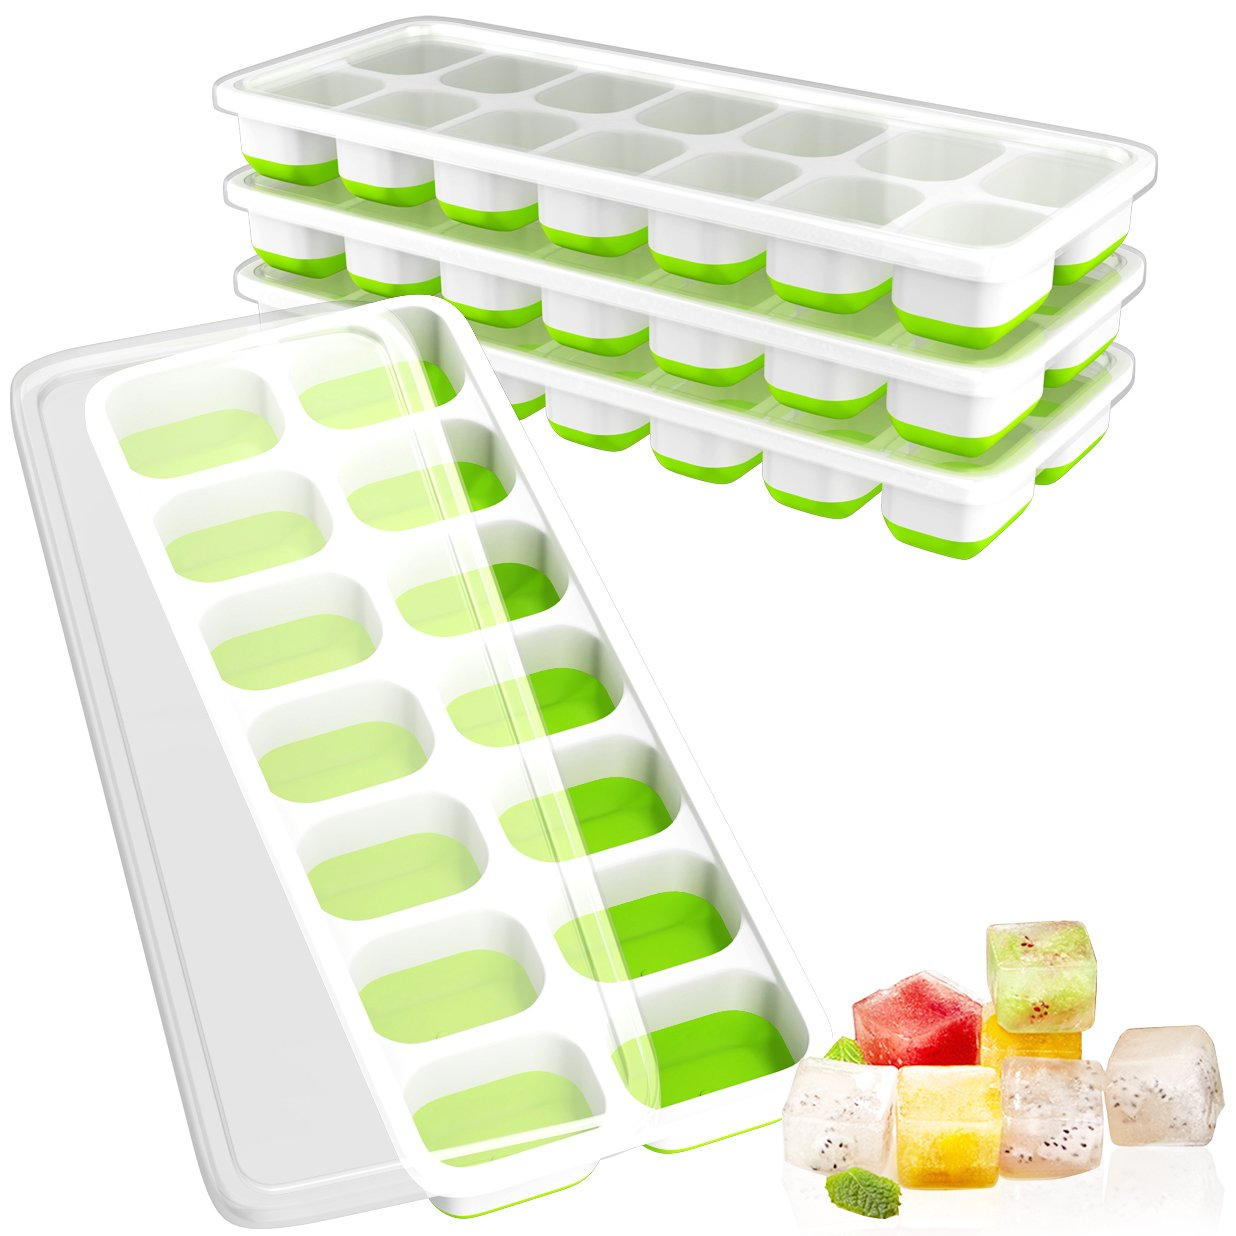 Ouddy 4 Pack Ice Cube Trays with Lid, Easy-Release Ice Cube Molds, 14-Silicone Ice Trays can Make 56 Ice Cubes, BPA Free Nontoxic and Safe, Stackable Durable and Dishwasher Safe(Green) DDD-026-2